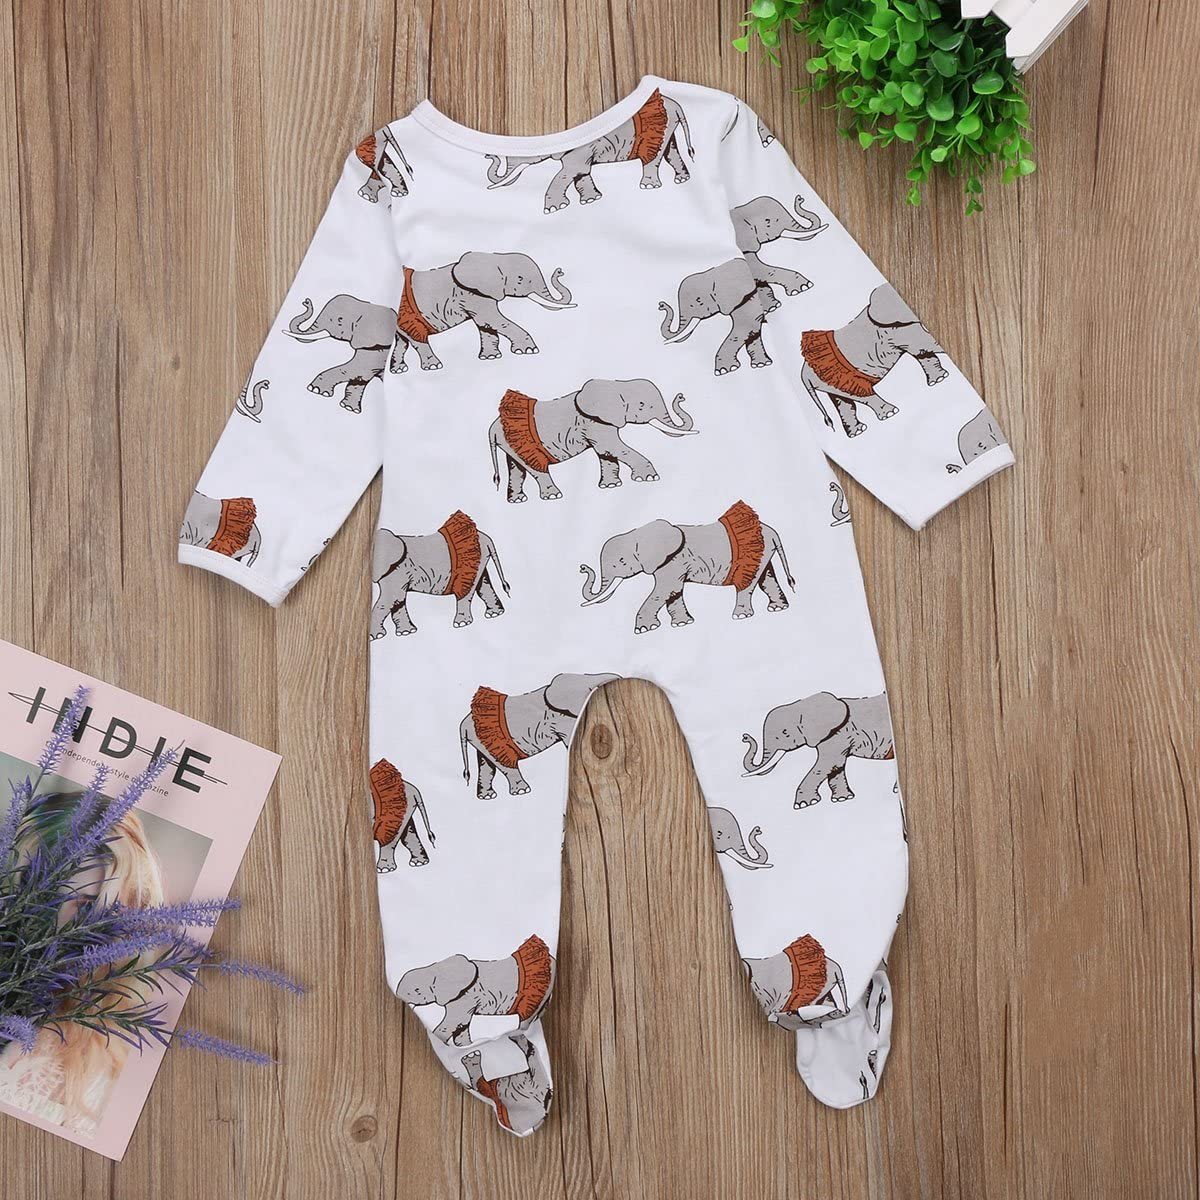 Baby Boy Girl Footed Pajamas Newborn Cotton Elephant Romper Playsuit Fall Clothes 0-18M